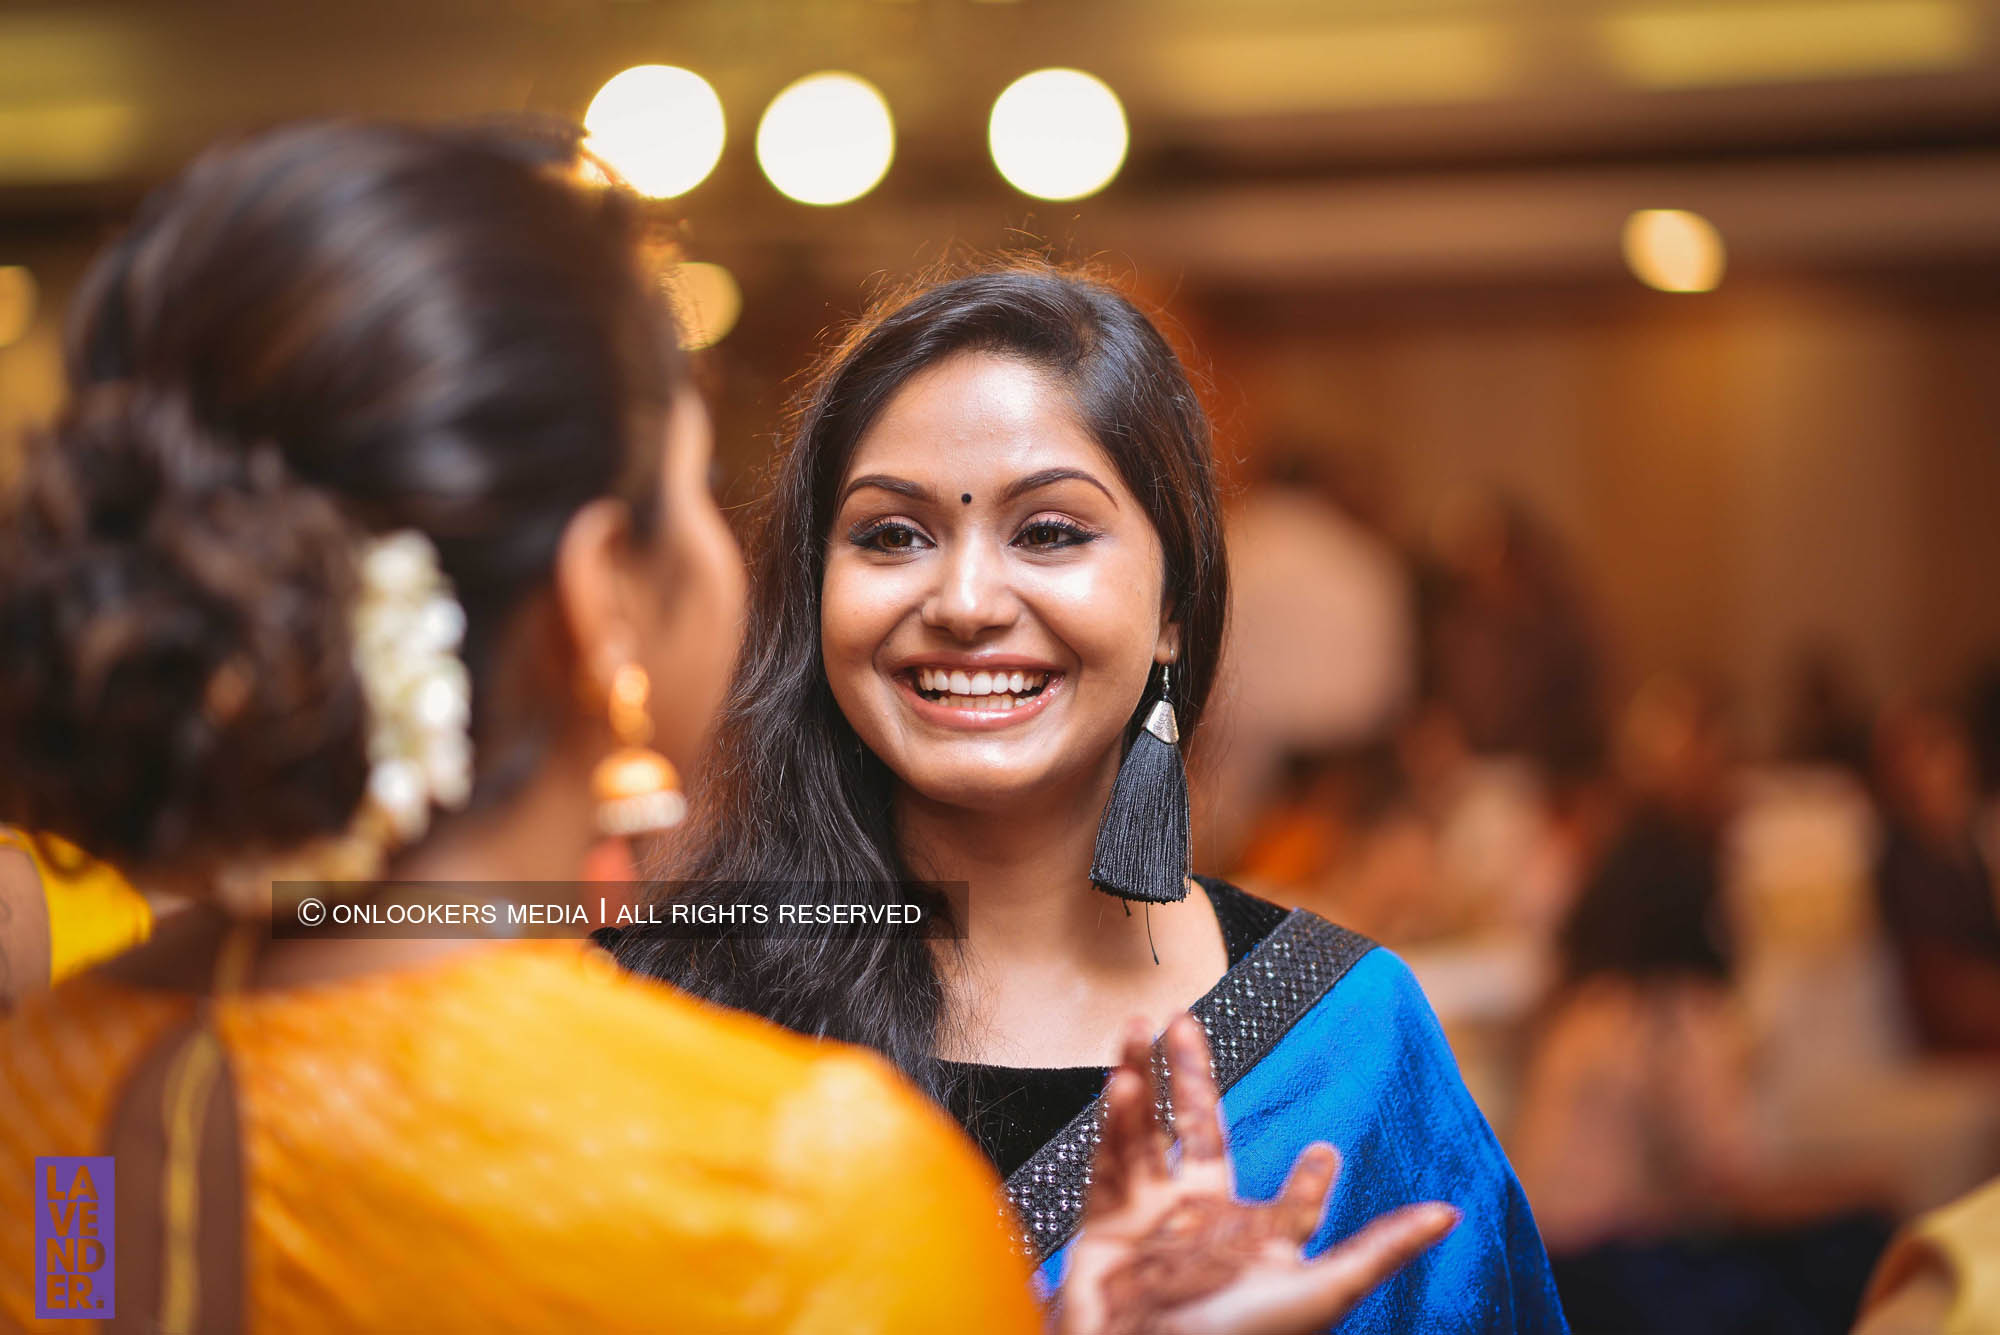 http://onlookersmedia.in/wp-content/uploads/2018/05/sreejith-vijay-wedding-stills-images-99.jpg